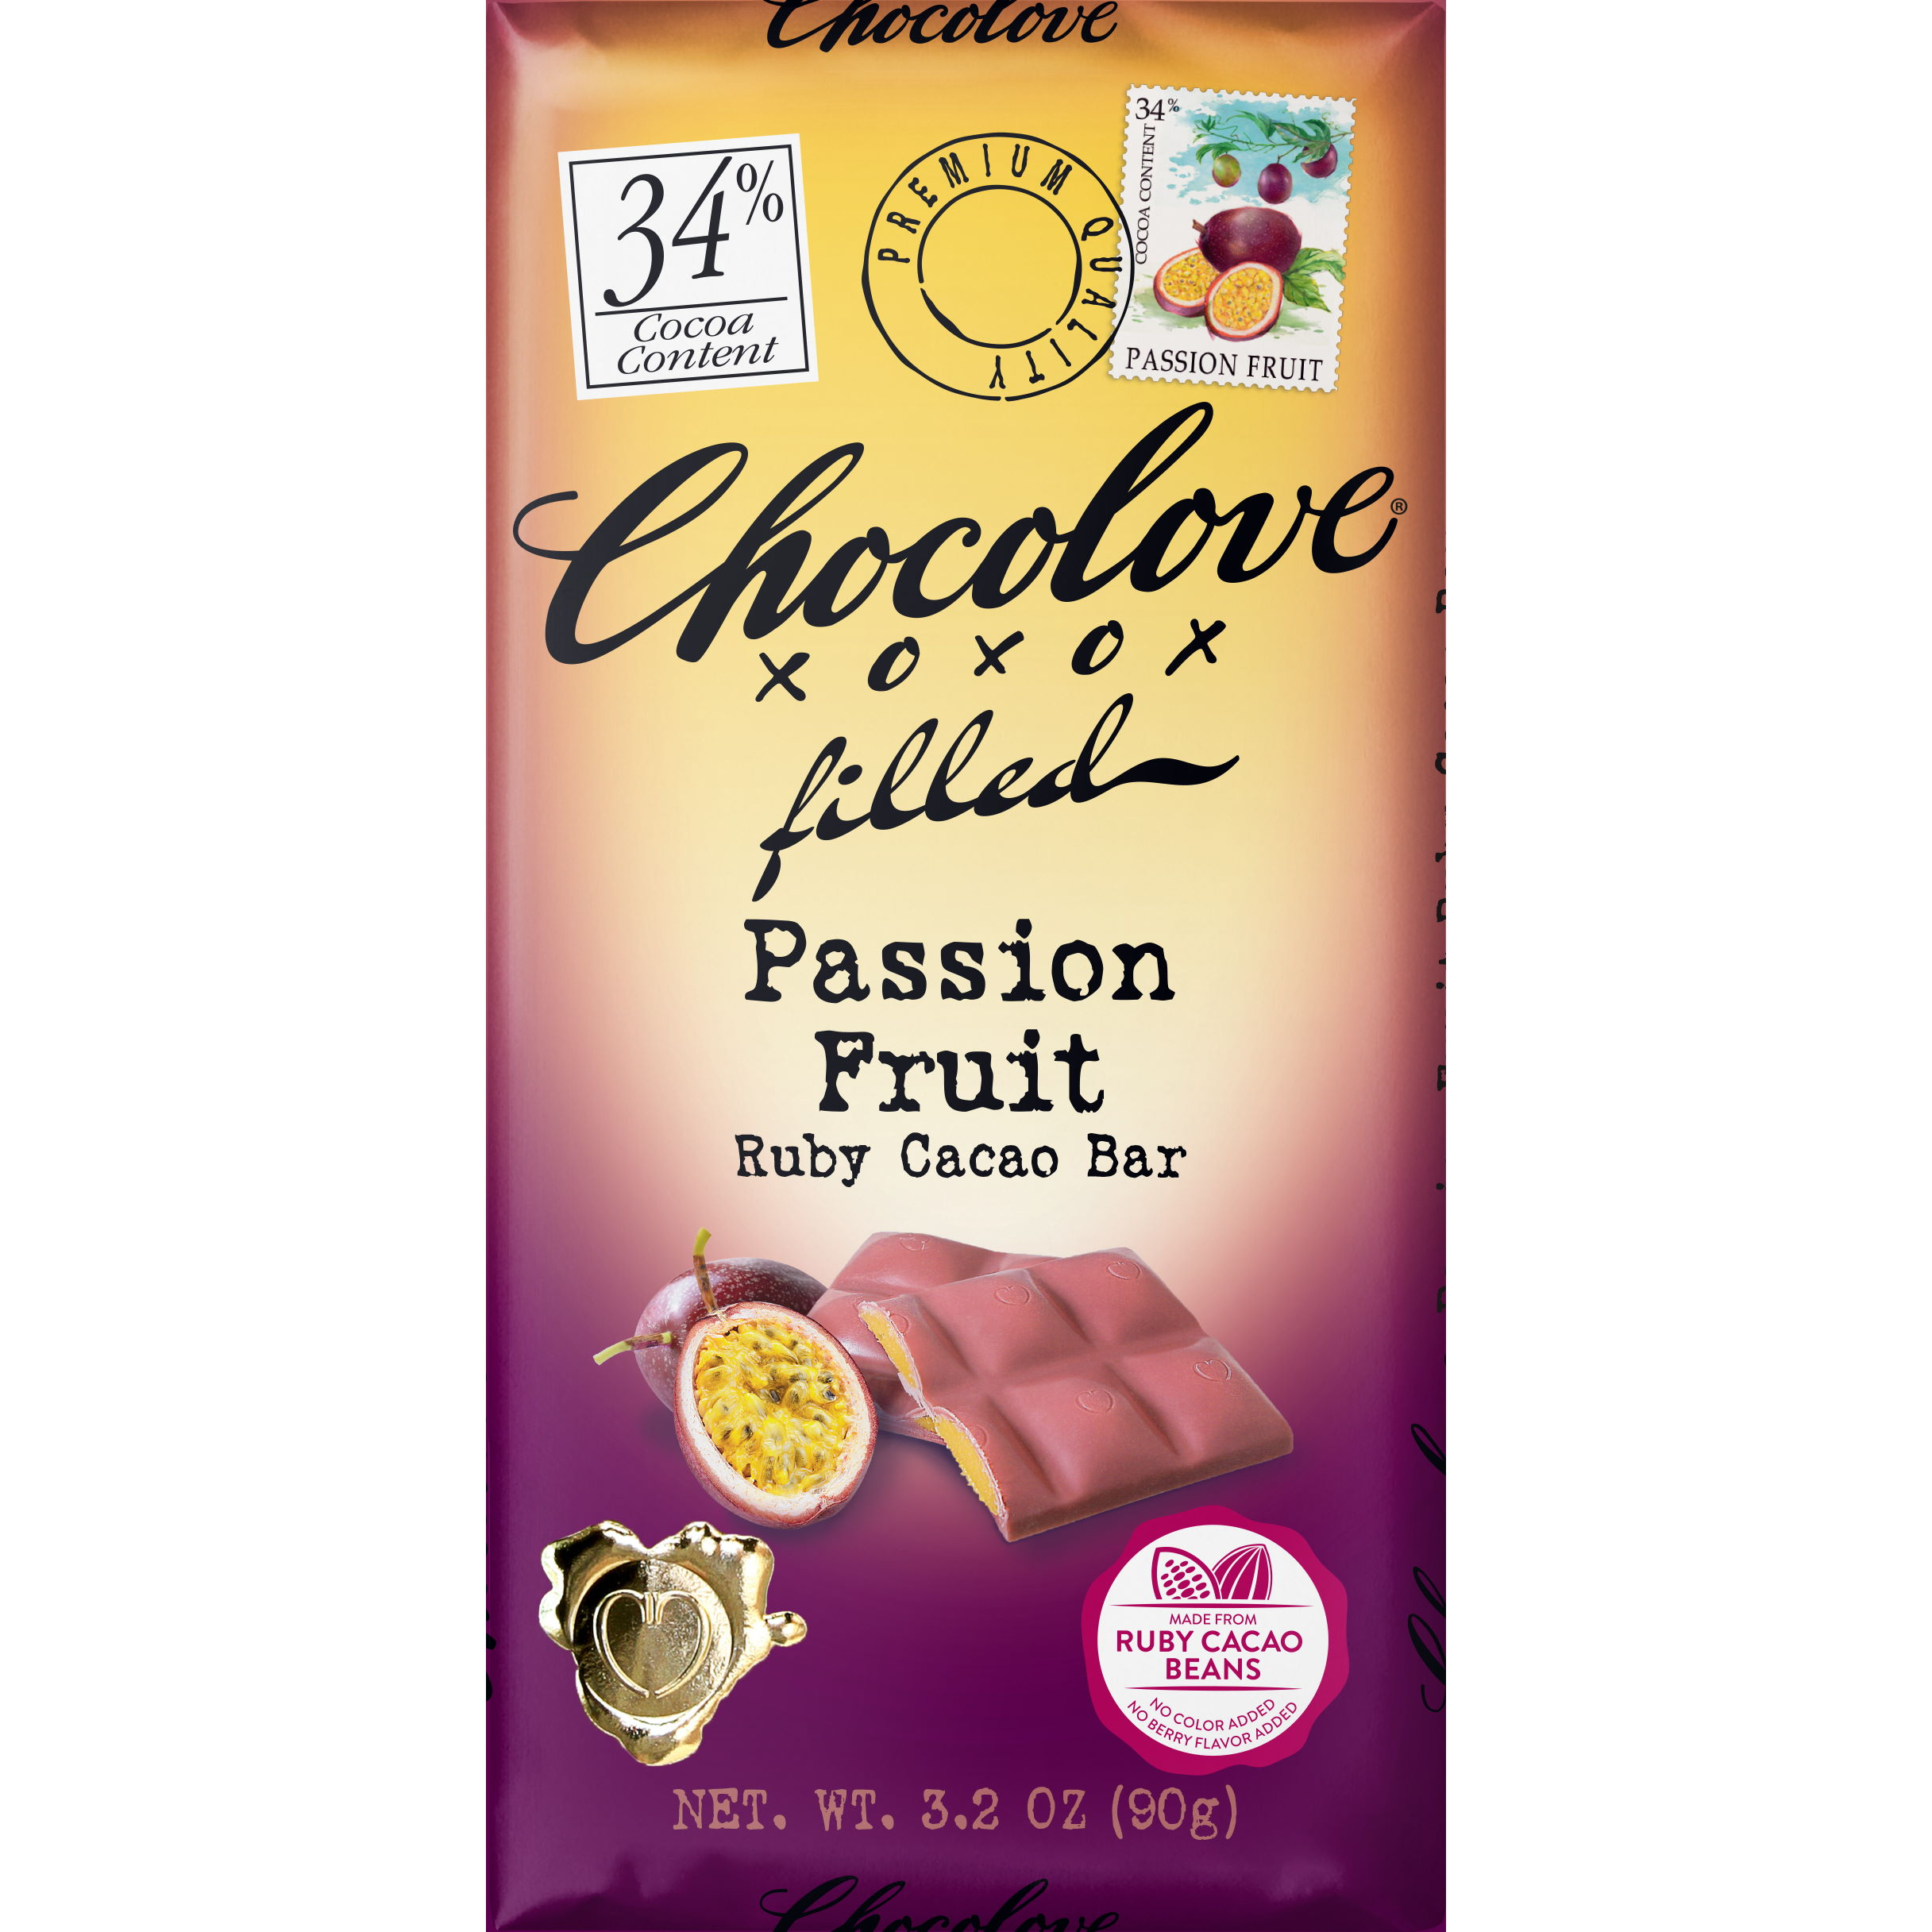 Chocolove 34% Passion Fruit Ruby Cacao Bar